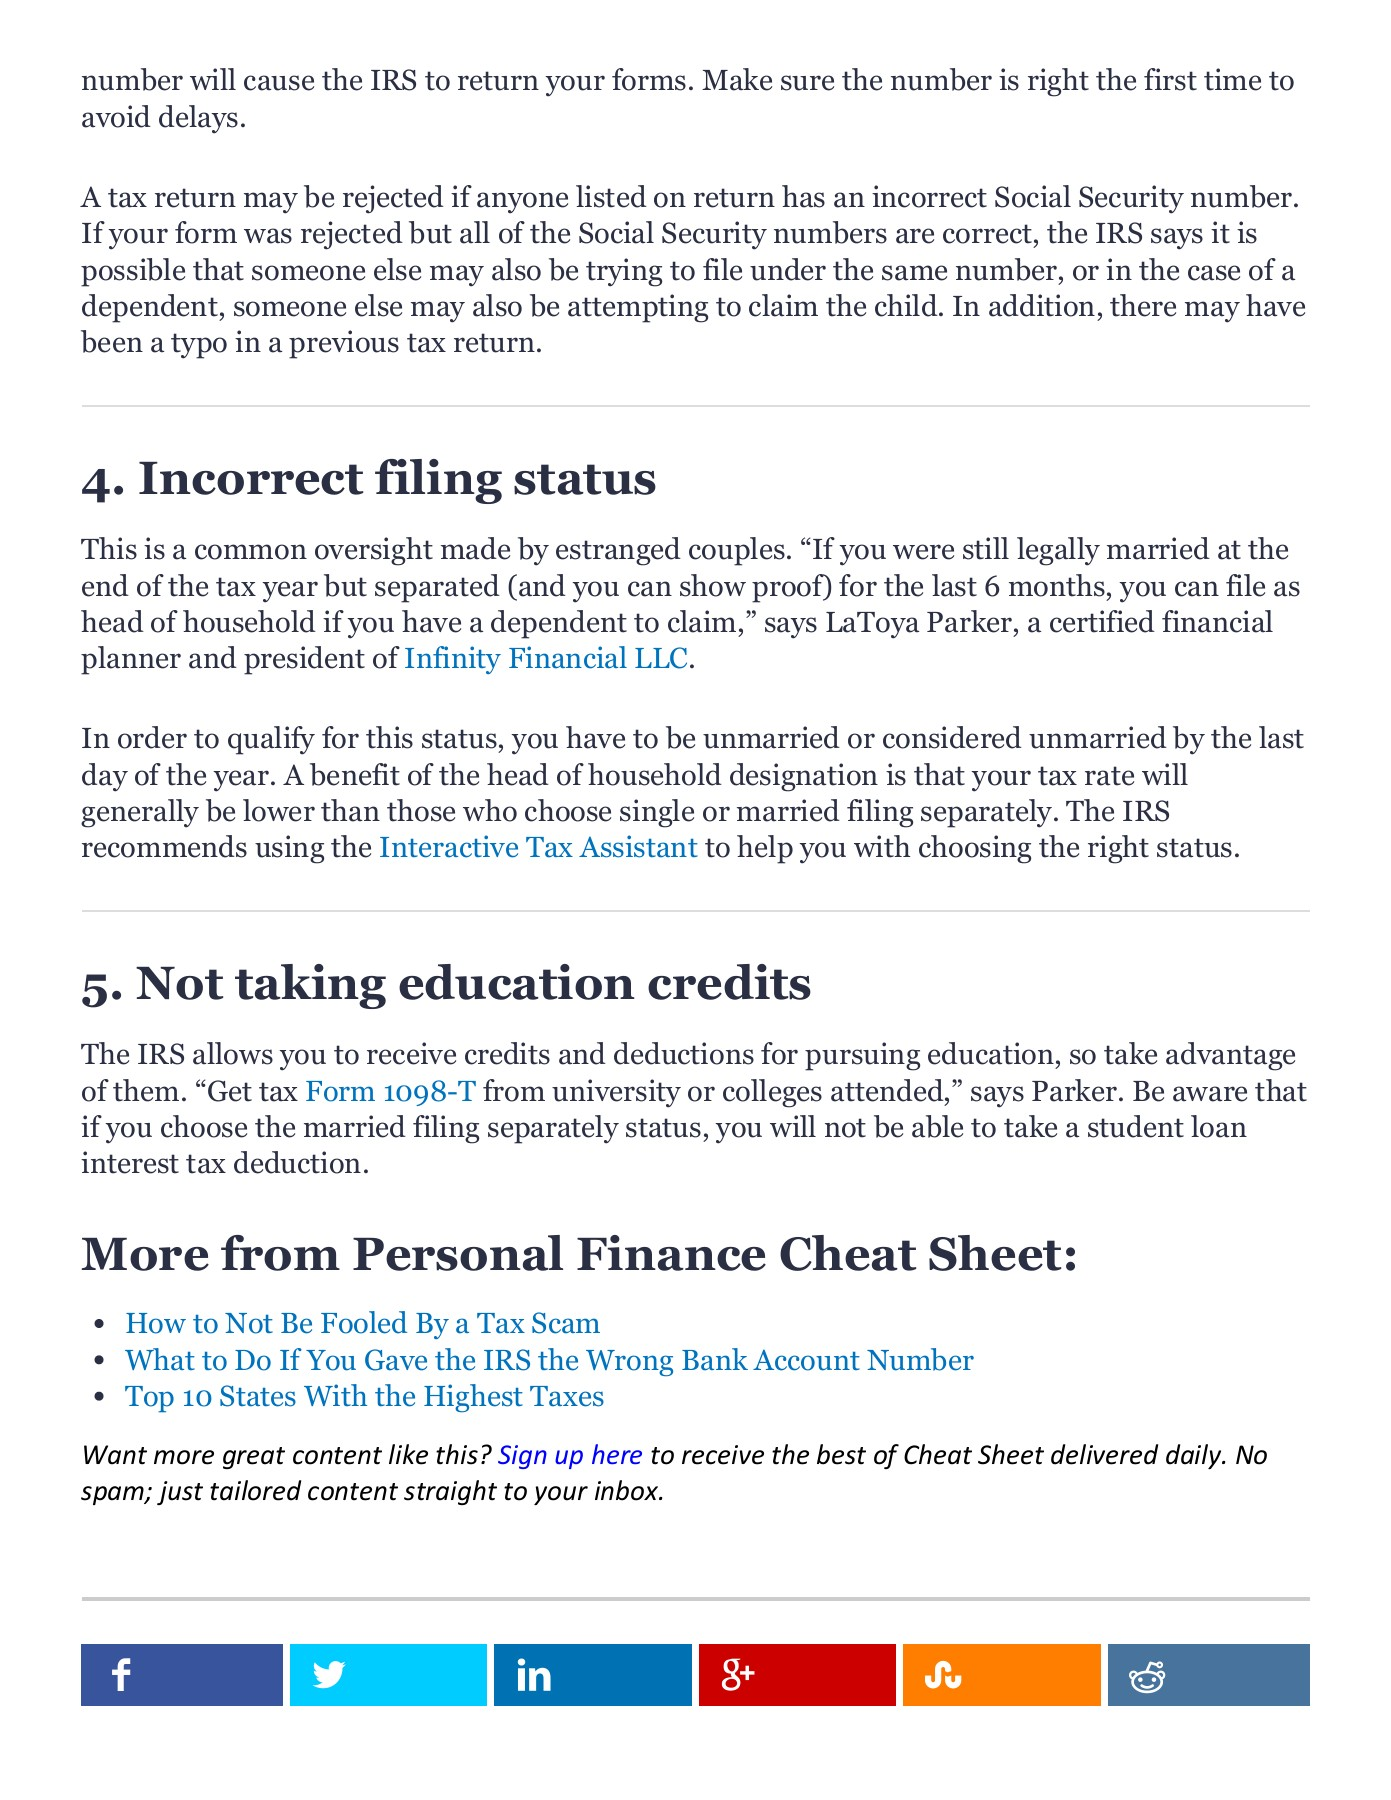 HOME / PERSONAL FINANCE / 5 Common Tax Blunders to Avoid